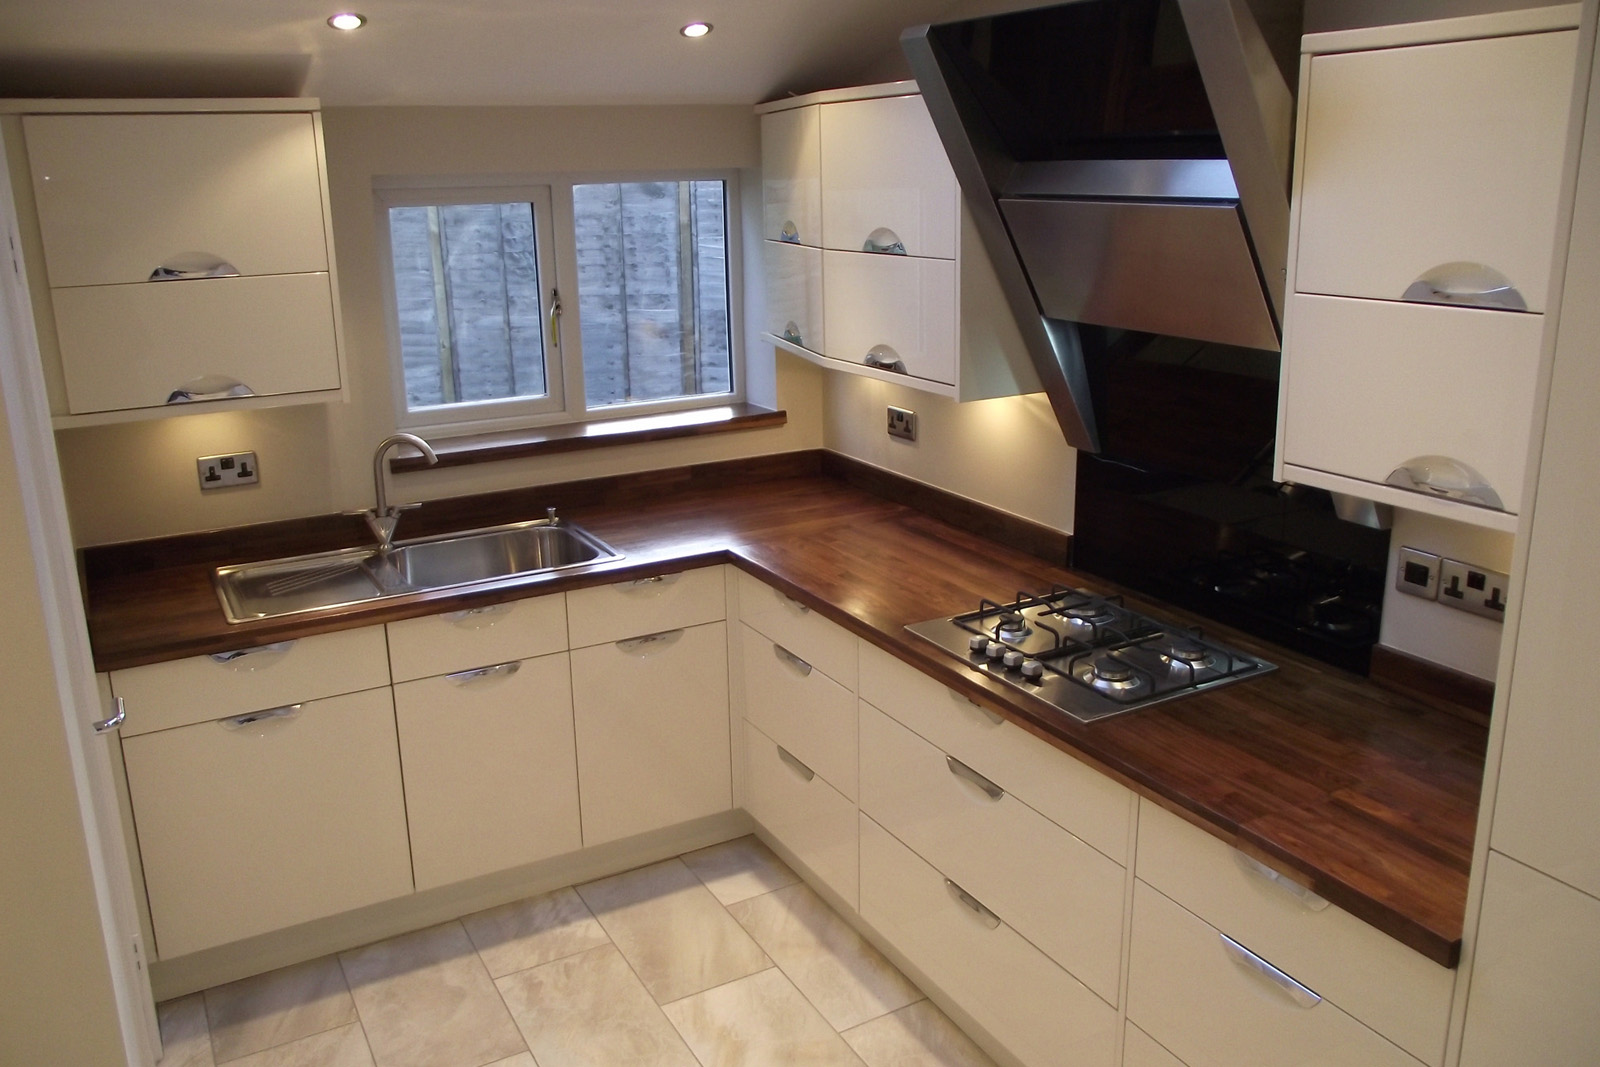 Mr Smith New Kitchen Leeds Cheap Kitchen Units And Cabinets For Sale Online Kitchen Warehouse